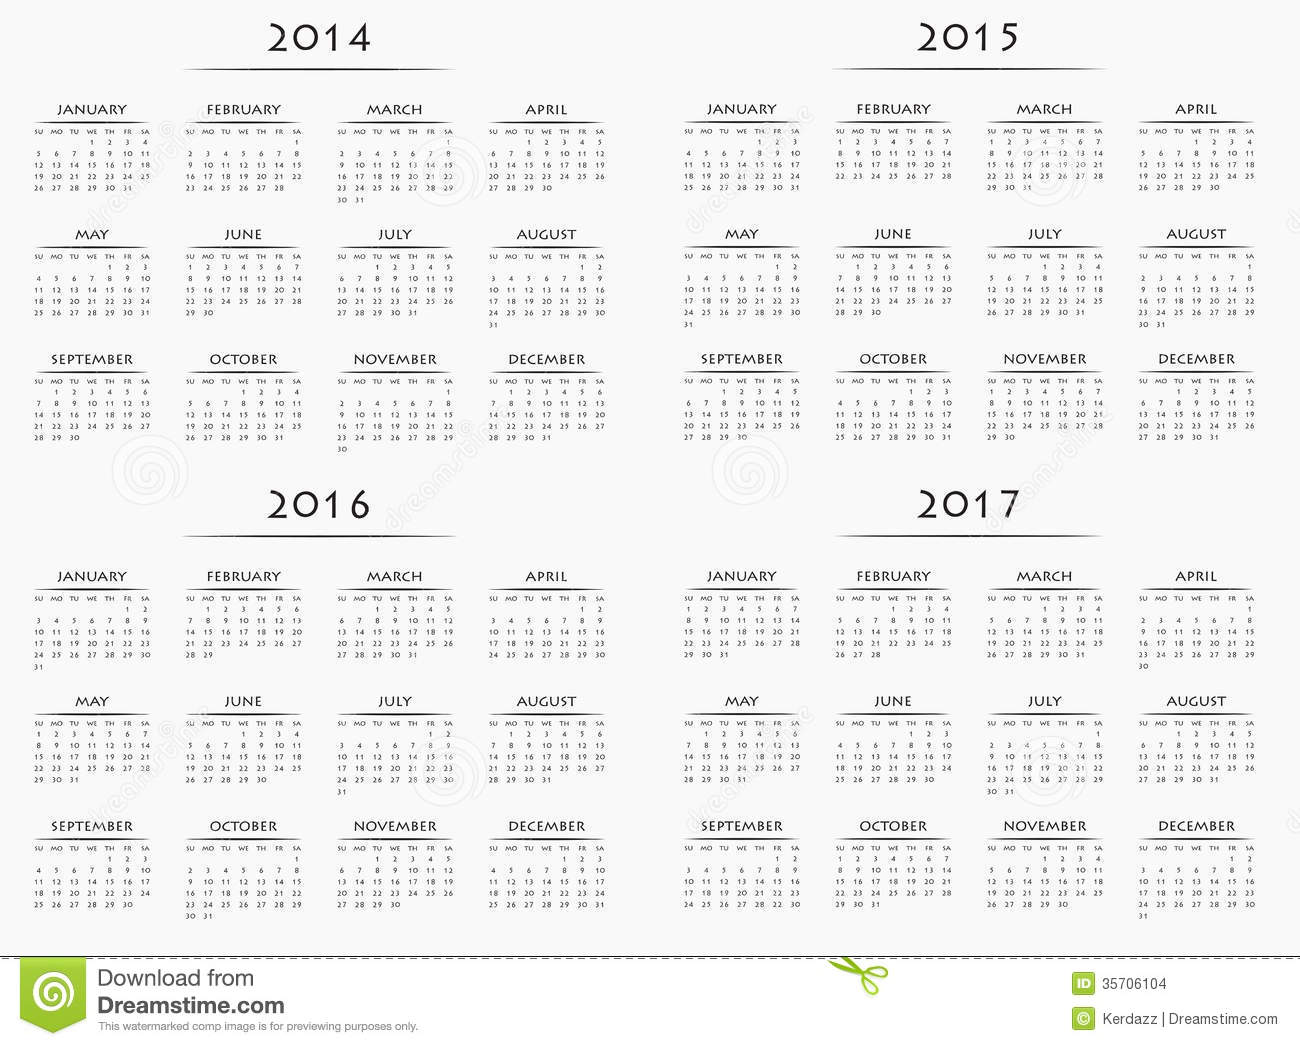 Calendar For Years 2014-2017 Stock Images - Image: 35706104